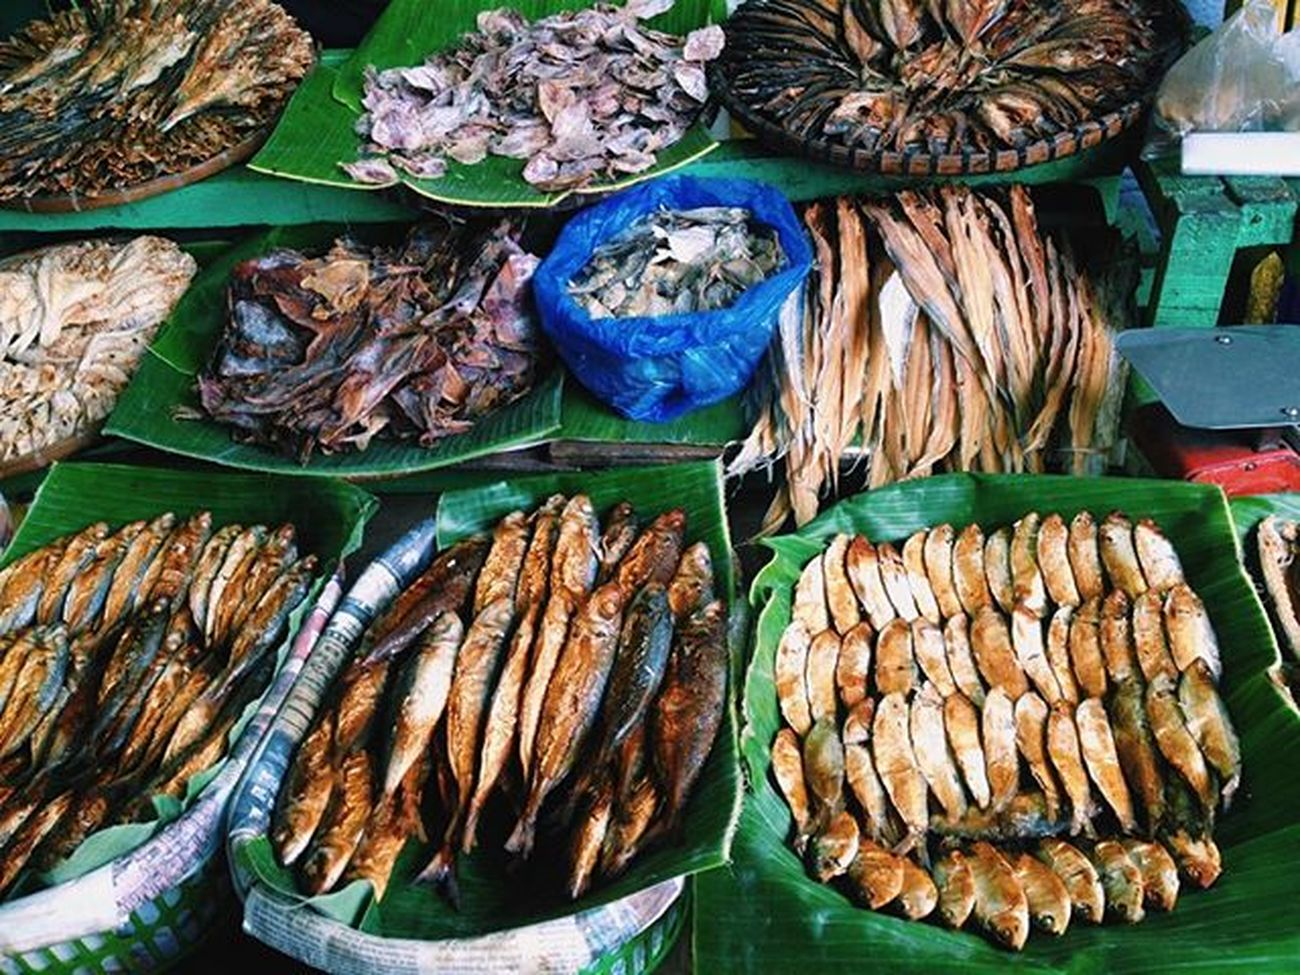 Tuyo (dried fish) enough to stank up your entire fridge. Palengke Imus Philippines Explorephilippines VSCO Vscotravel Natgeotravel Travelwhattodo Nam_travel Matadornetwork GrammerPH Farmersmarket FishMarket Travelblog Internationalfood